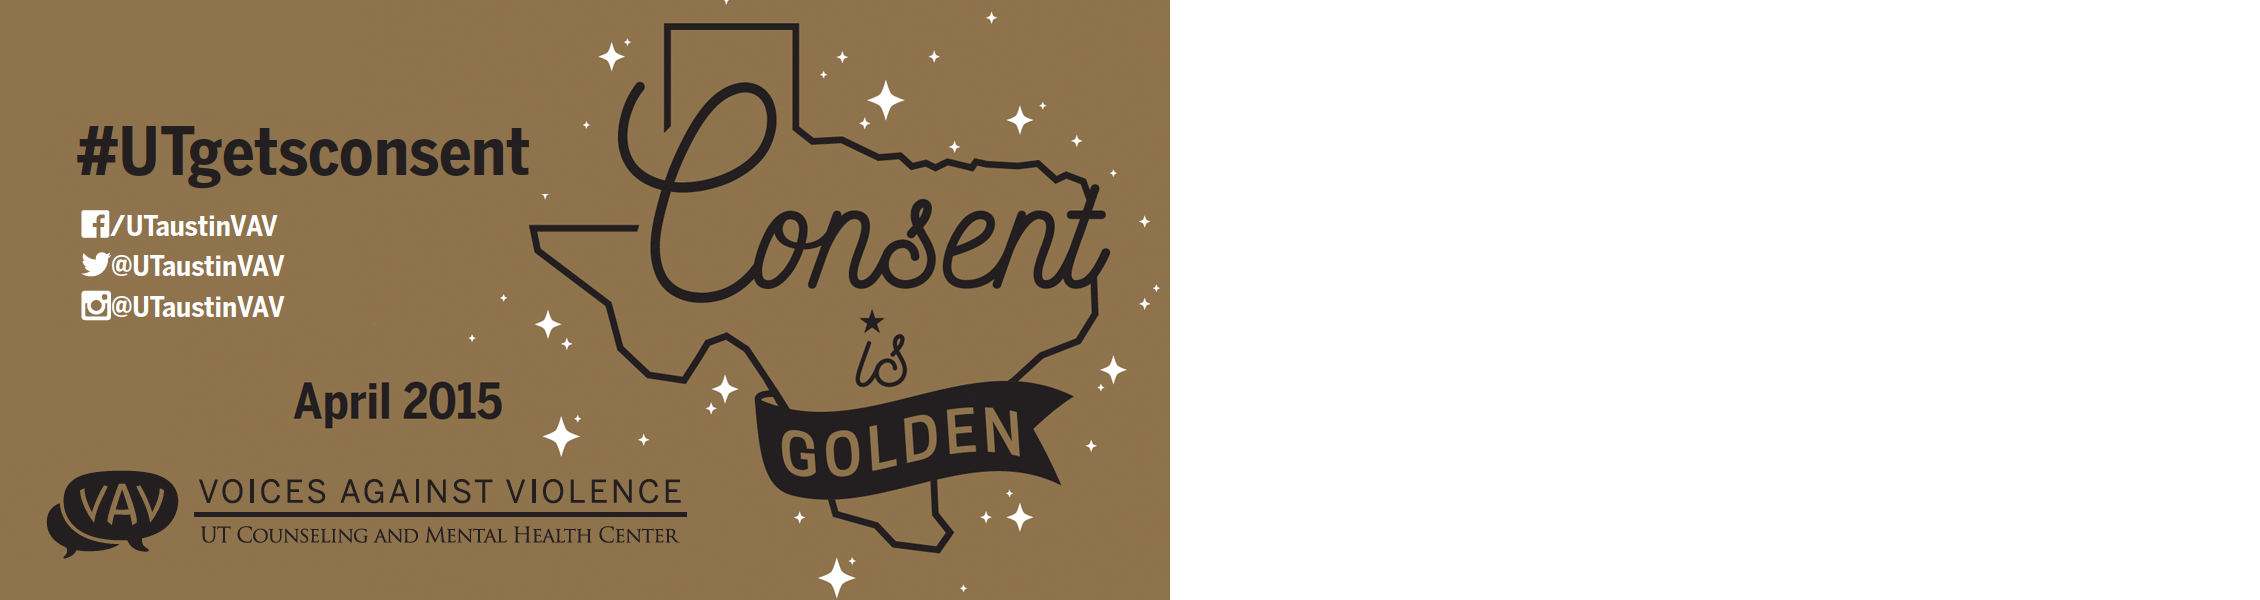 consent is golden